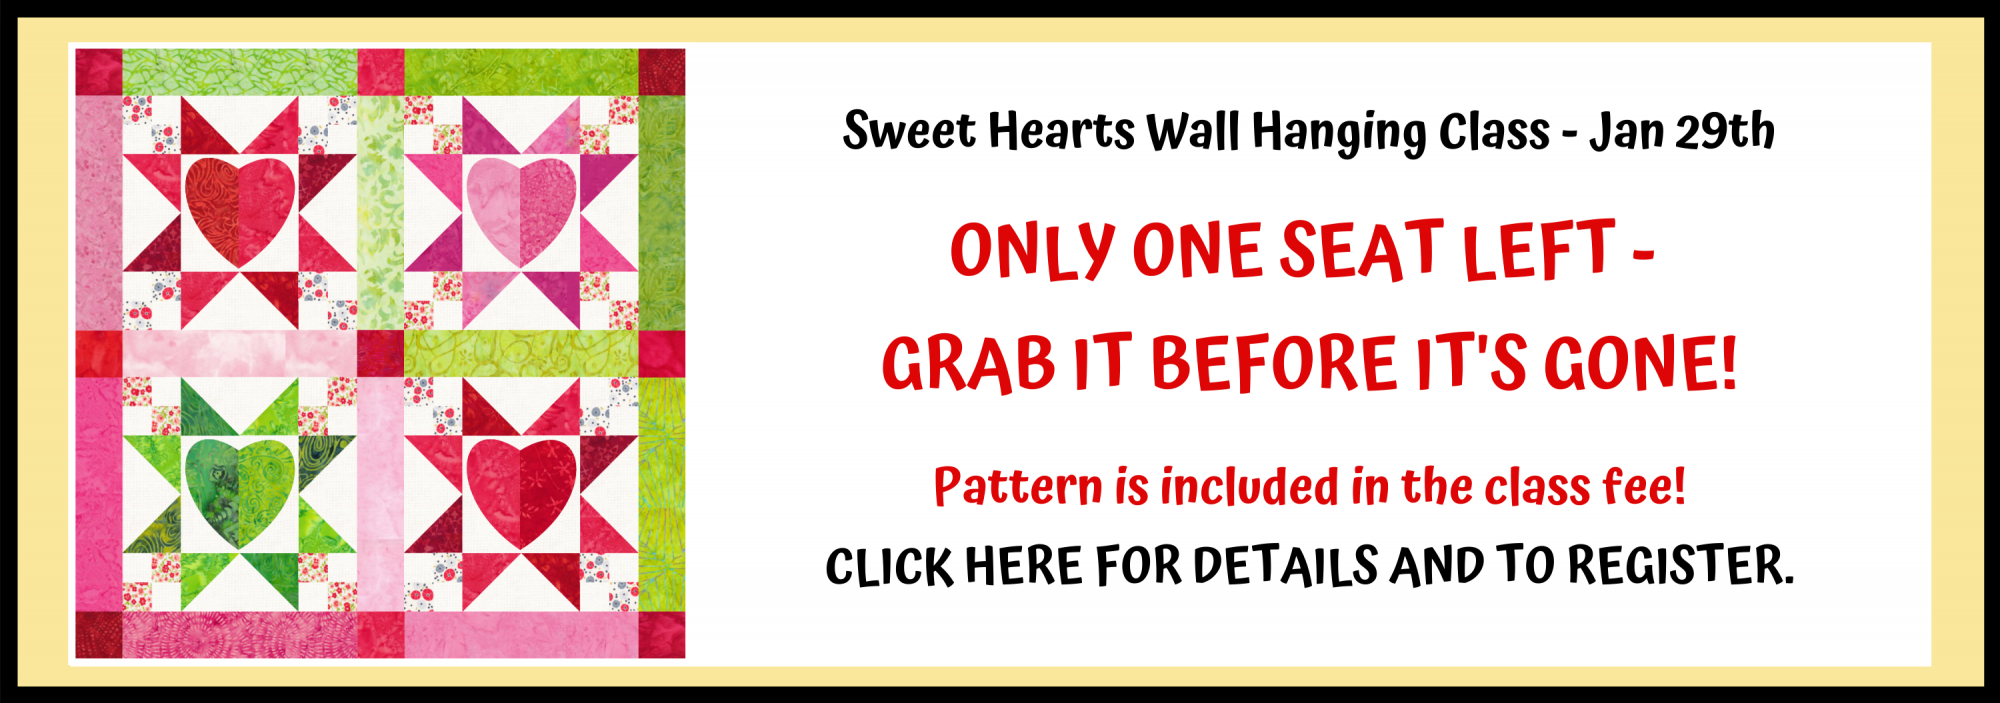 bee's quilt shop st augustine florida classes wallhanging quilt class hearts valentine